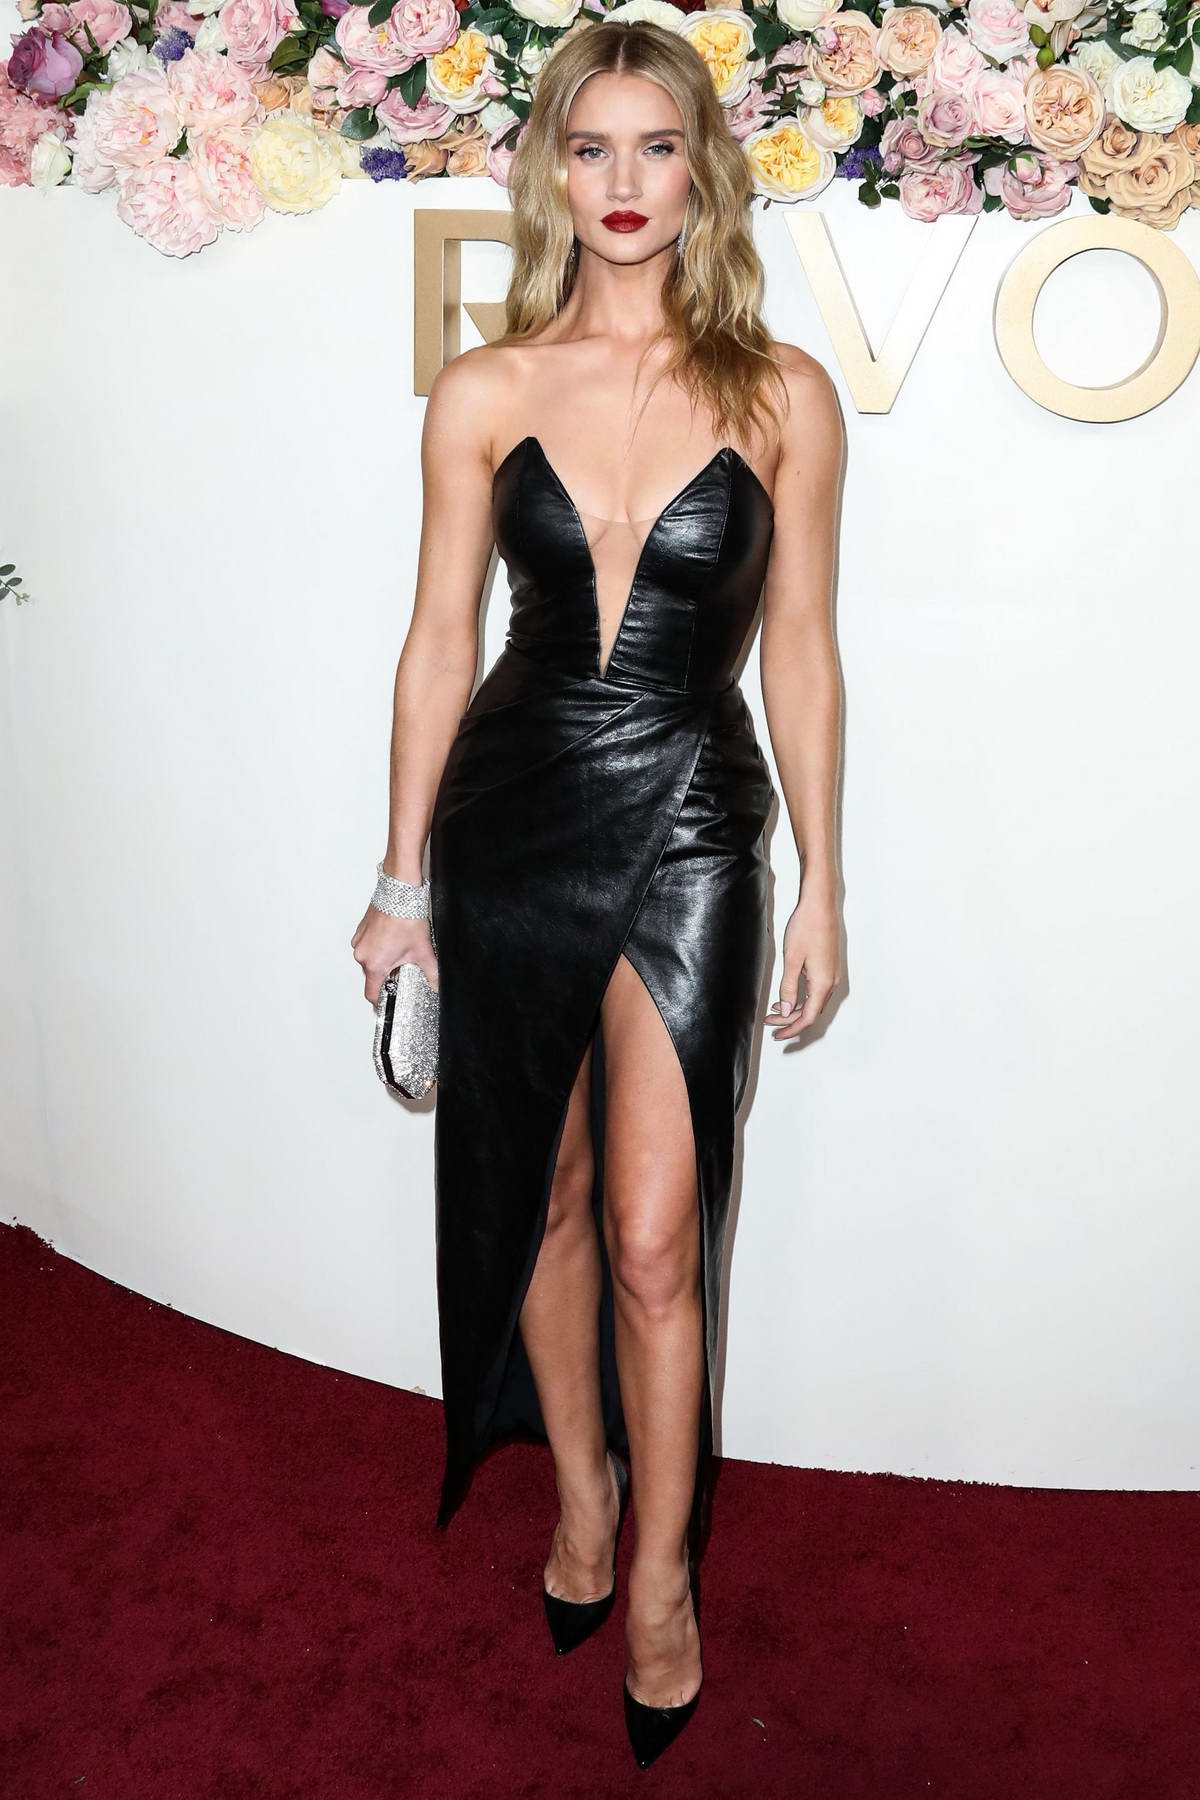 Rosie Huntington-Whiteley attends the 3rd Annual REVOLVE Awards at Goya Studios in Hollywood, California